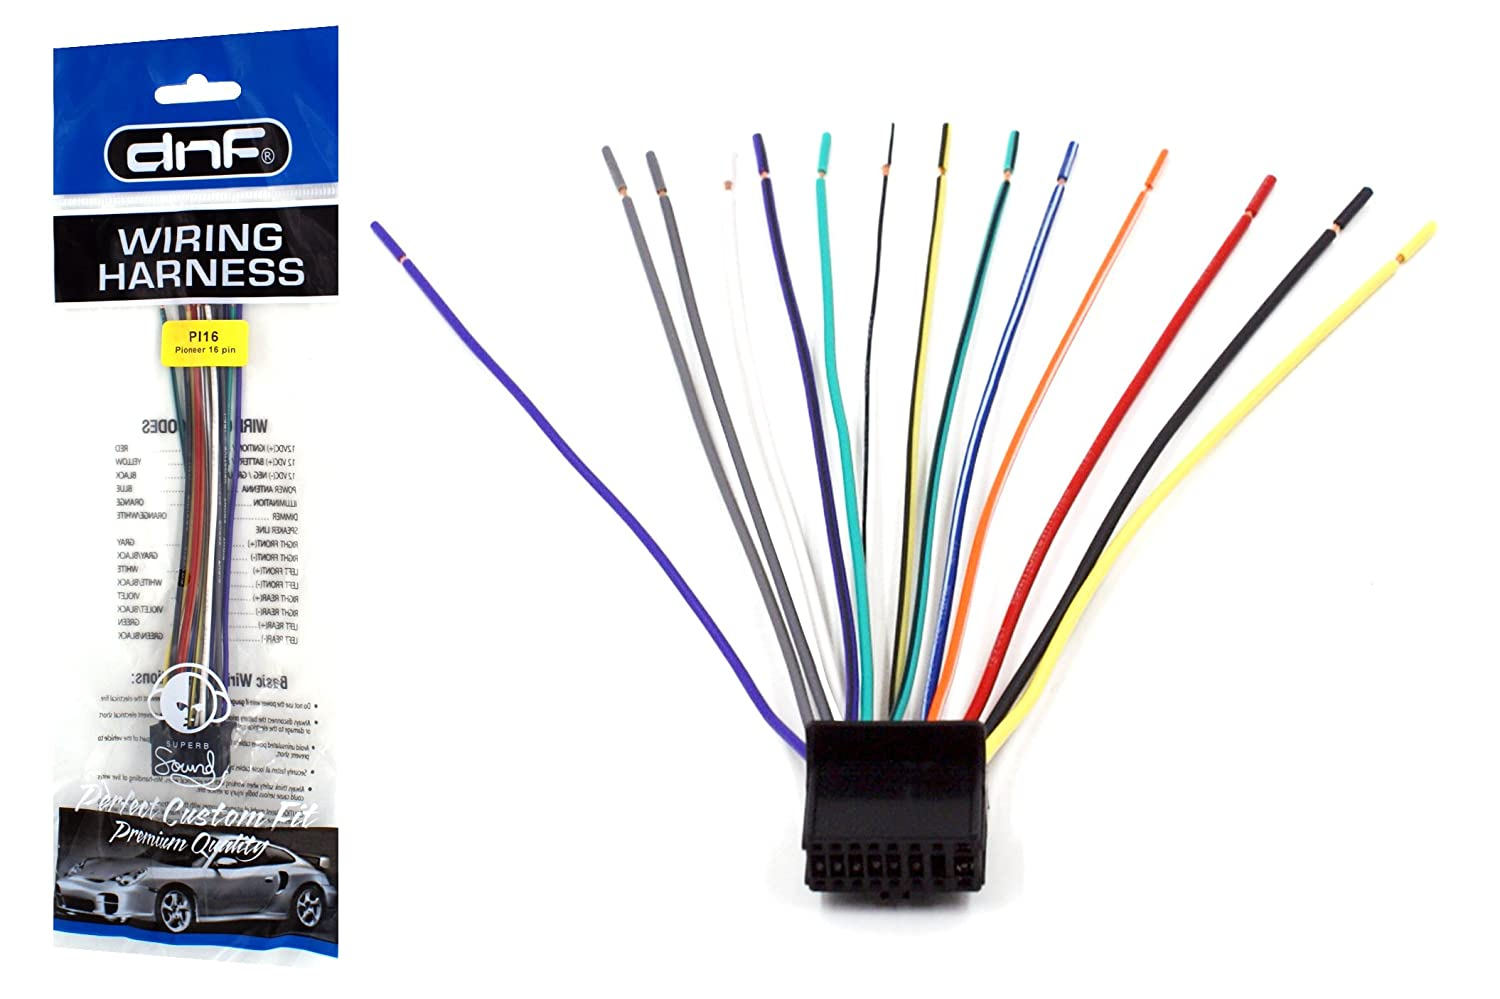 amazon com: dnf pioneer wiring harness deh-p4800mp deh-p4900ib deh-p5000ub  - 100% copper wires!: automotive